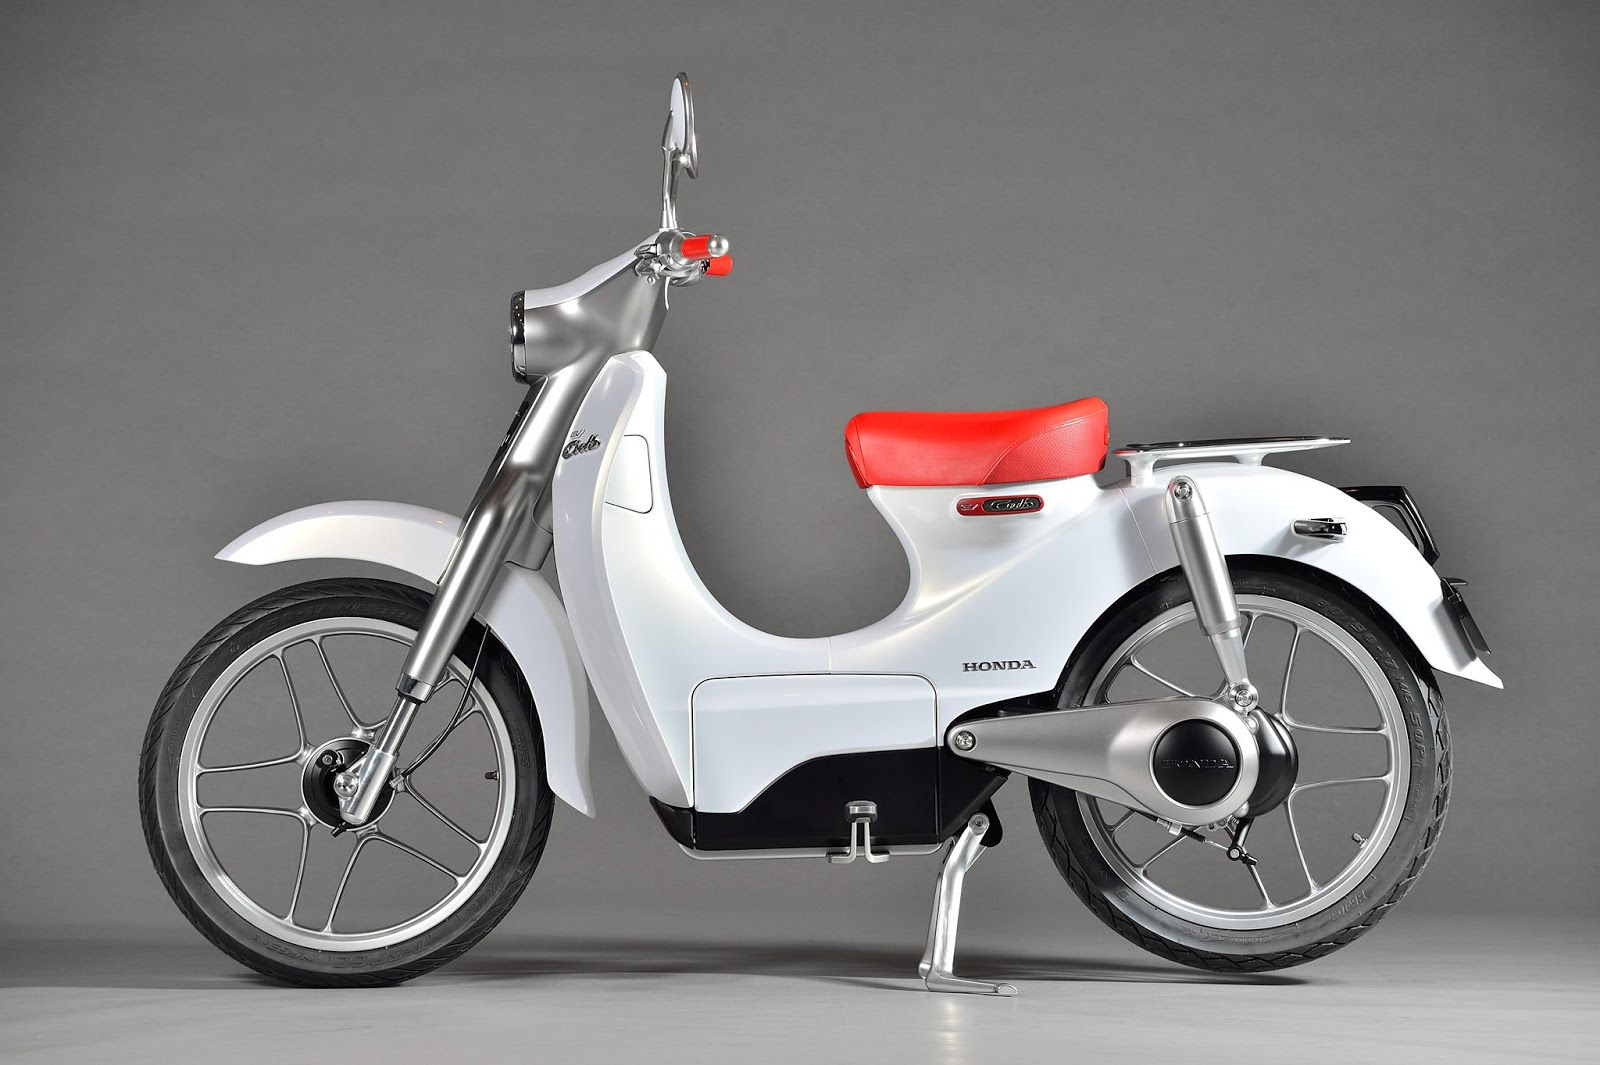 Honda Crv Used >> Honda EV Cub electric scooter displayed at Auto Expo 2016 ...